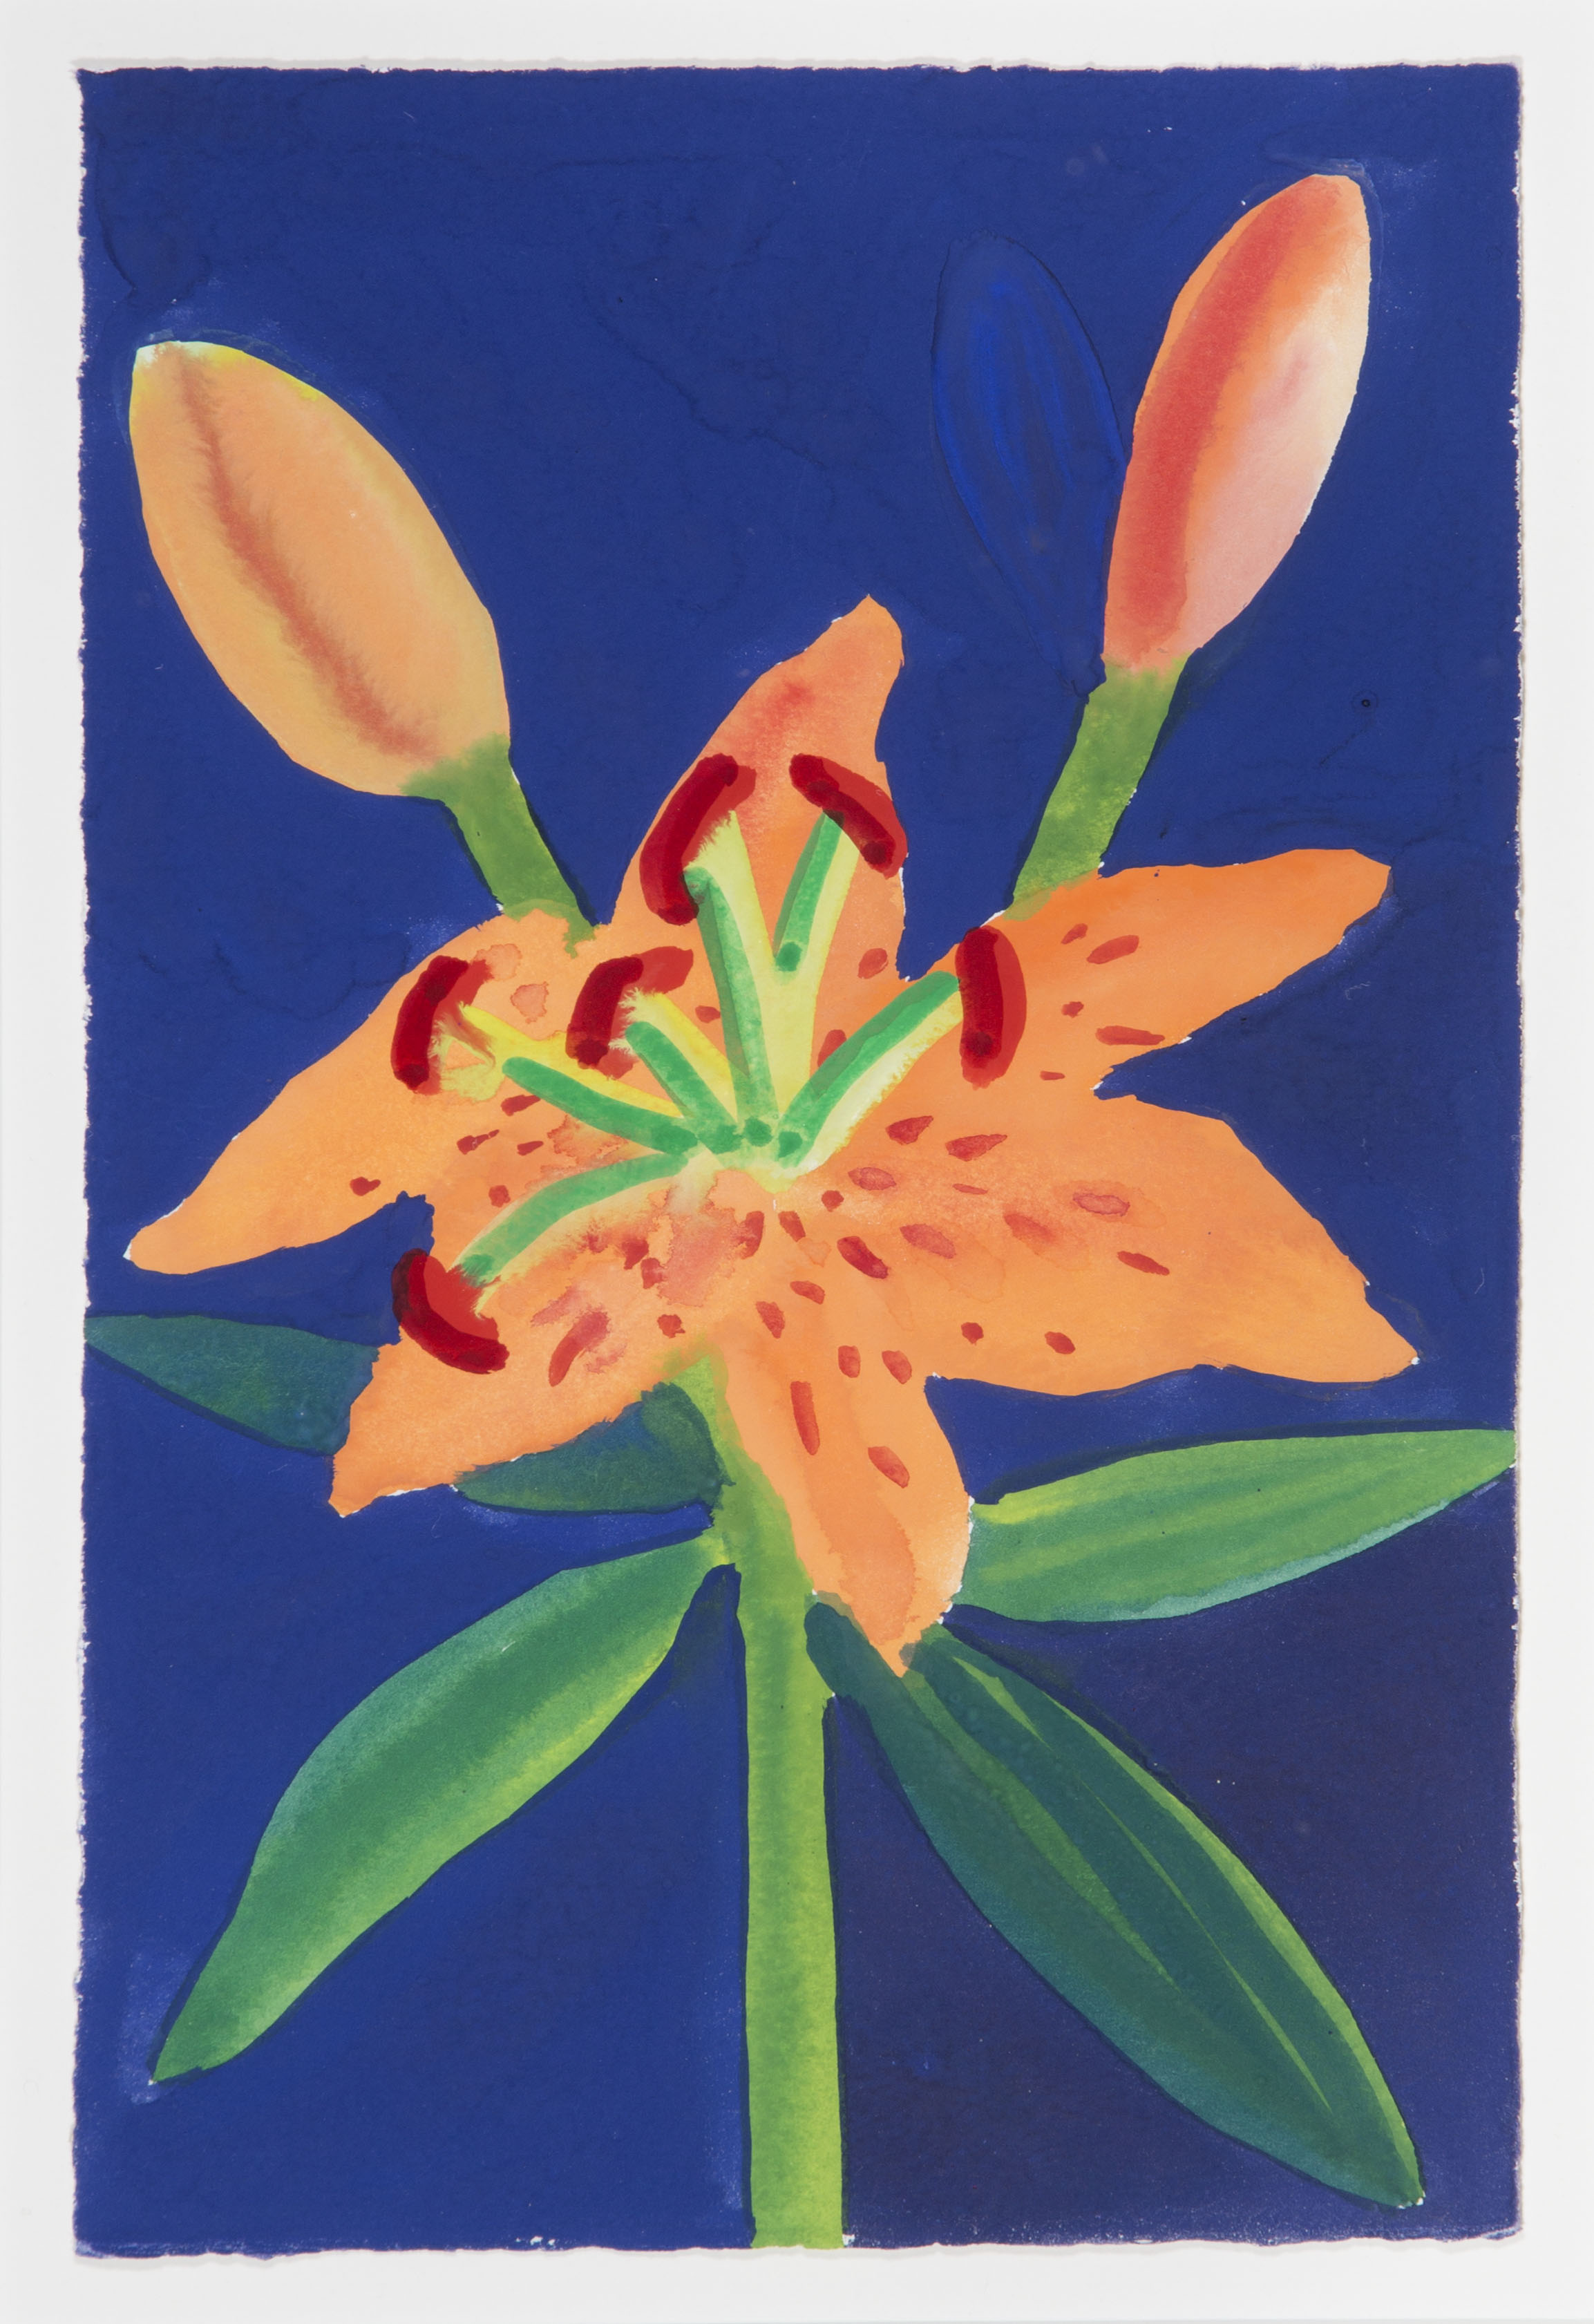 Apricot Lily on Ultramarine and Black [dyj-98]